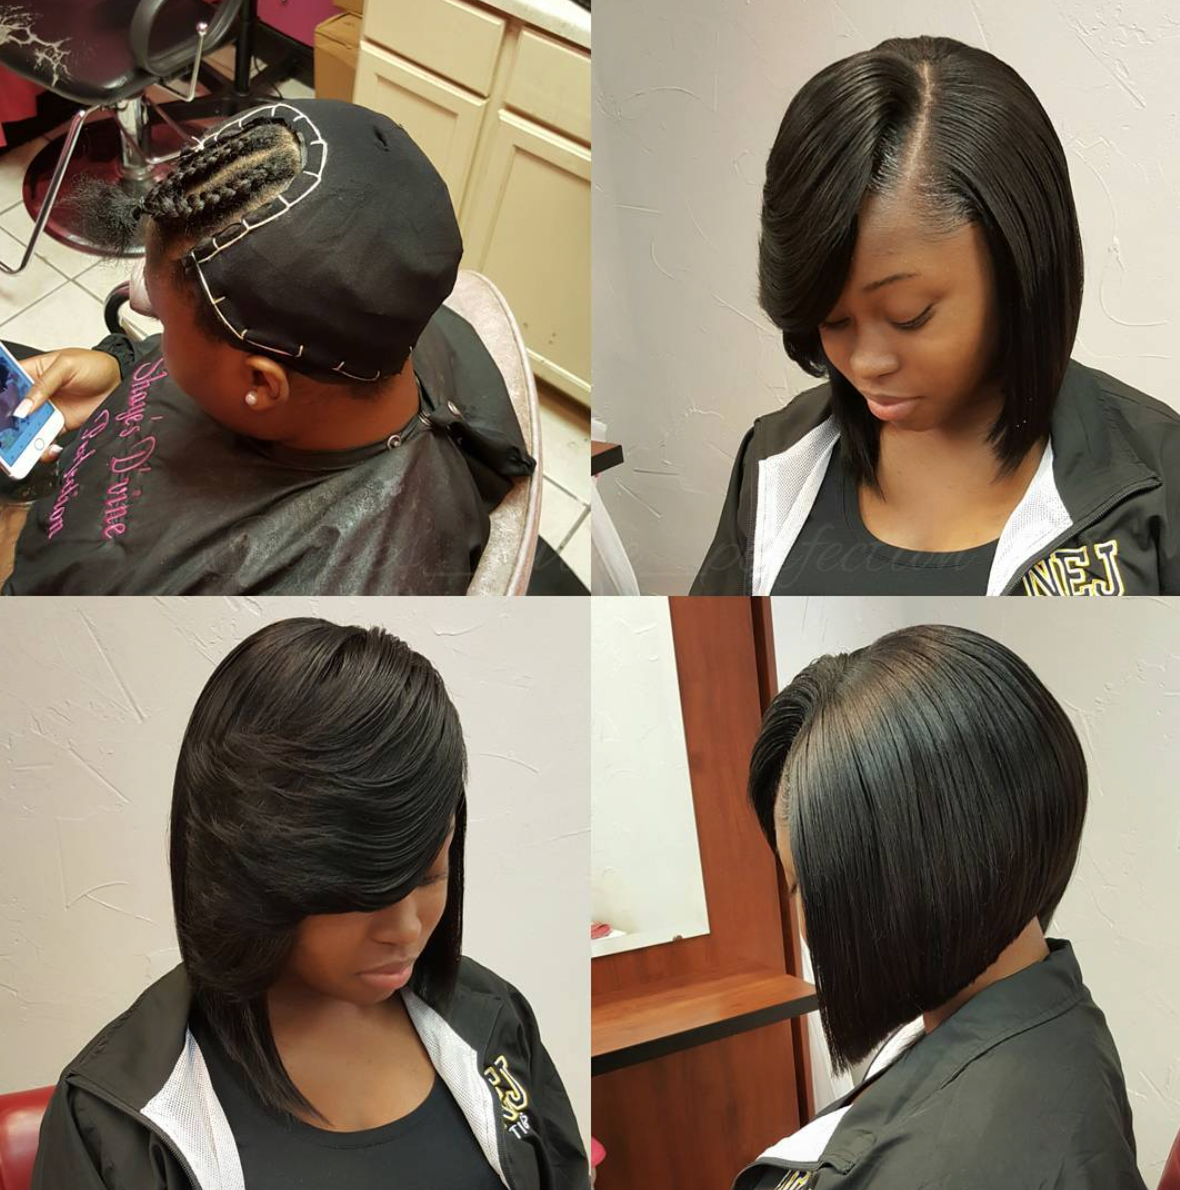 pin by nadine washington on bob life | weave hairstyles